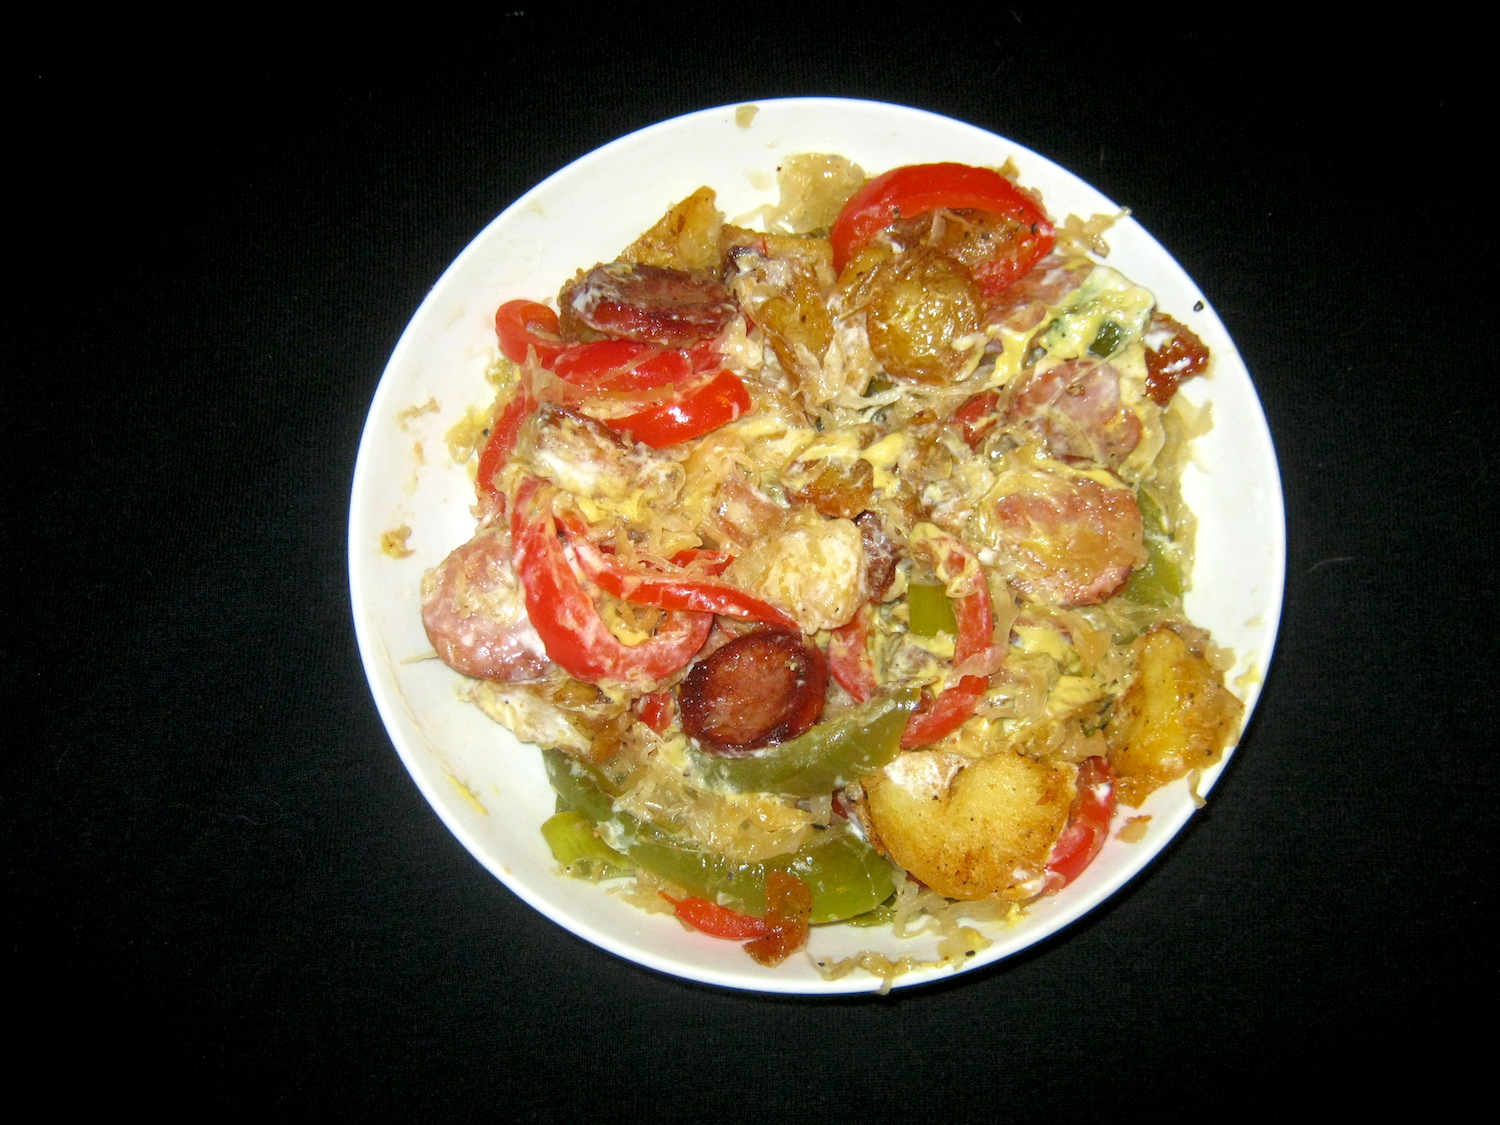 Sauerkraut and smoked sausage with sweet peppers and spring onions in a yoghurt, butternut and mustard sauce